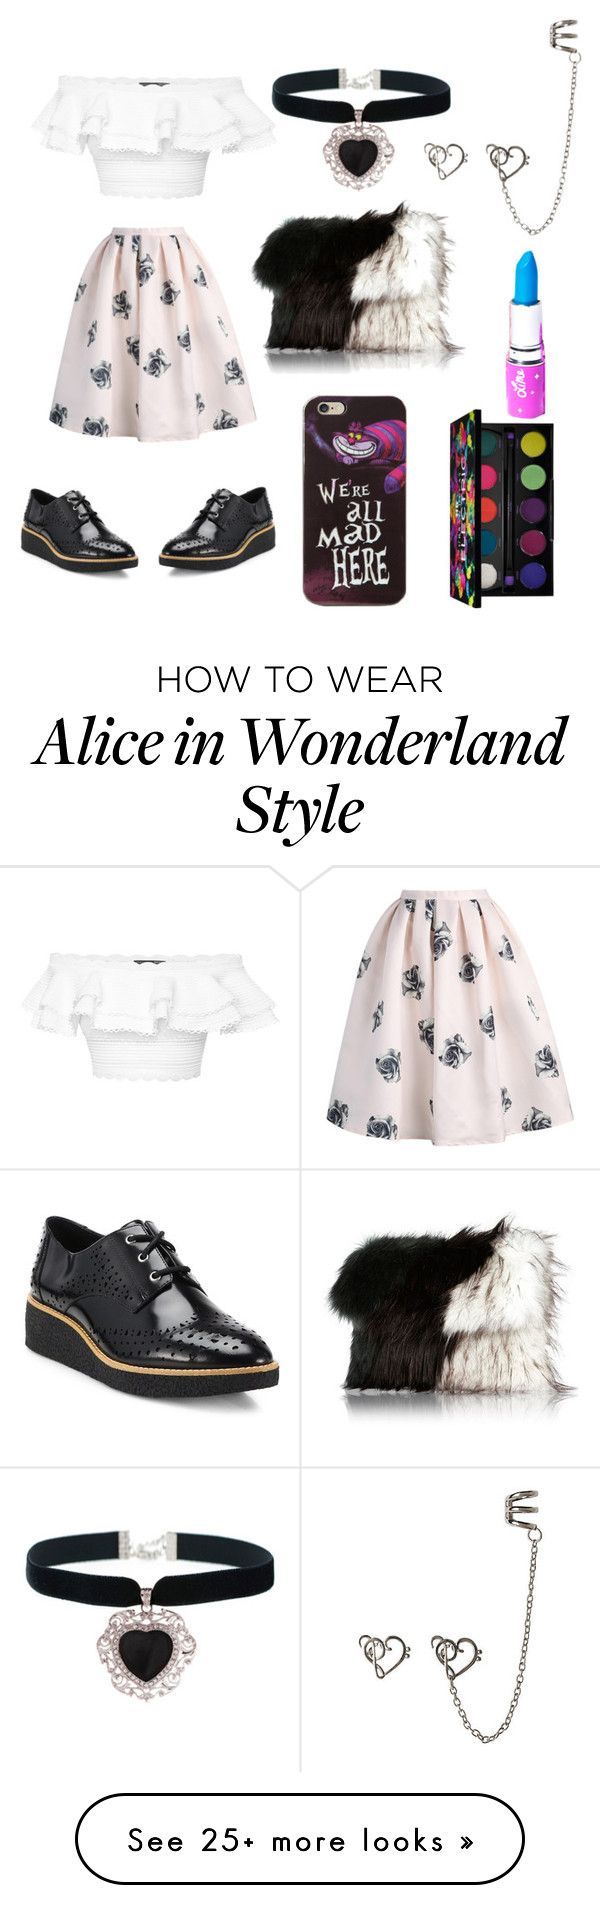 """Melanie Martinez inspired"" by maddykz on Polyvore featuring Alexander McQueen, Casetify, Disney, Lime Crime, Urban Decay, Rock 'N Rose, Rebecca Minkoff and River Island"